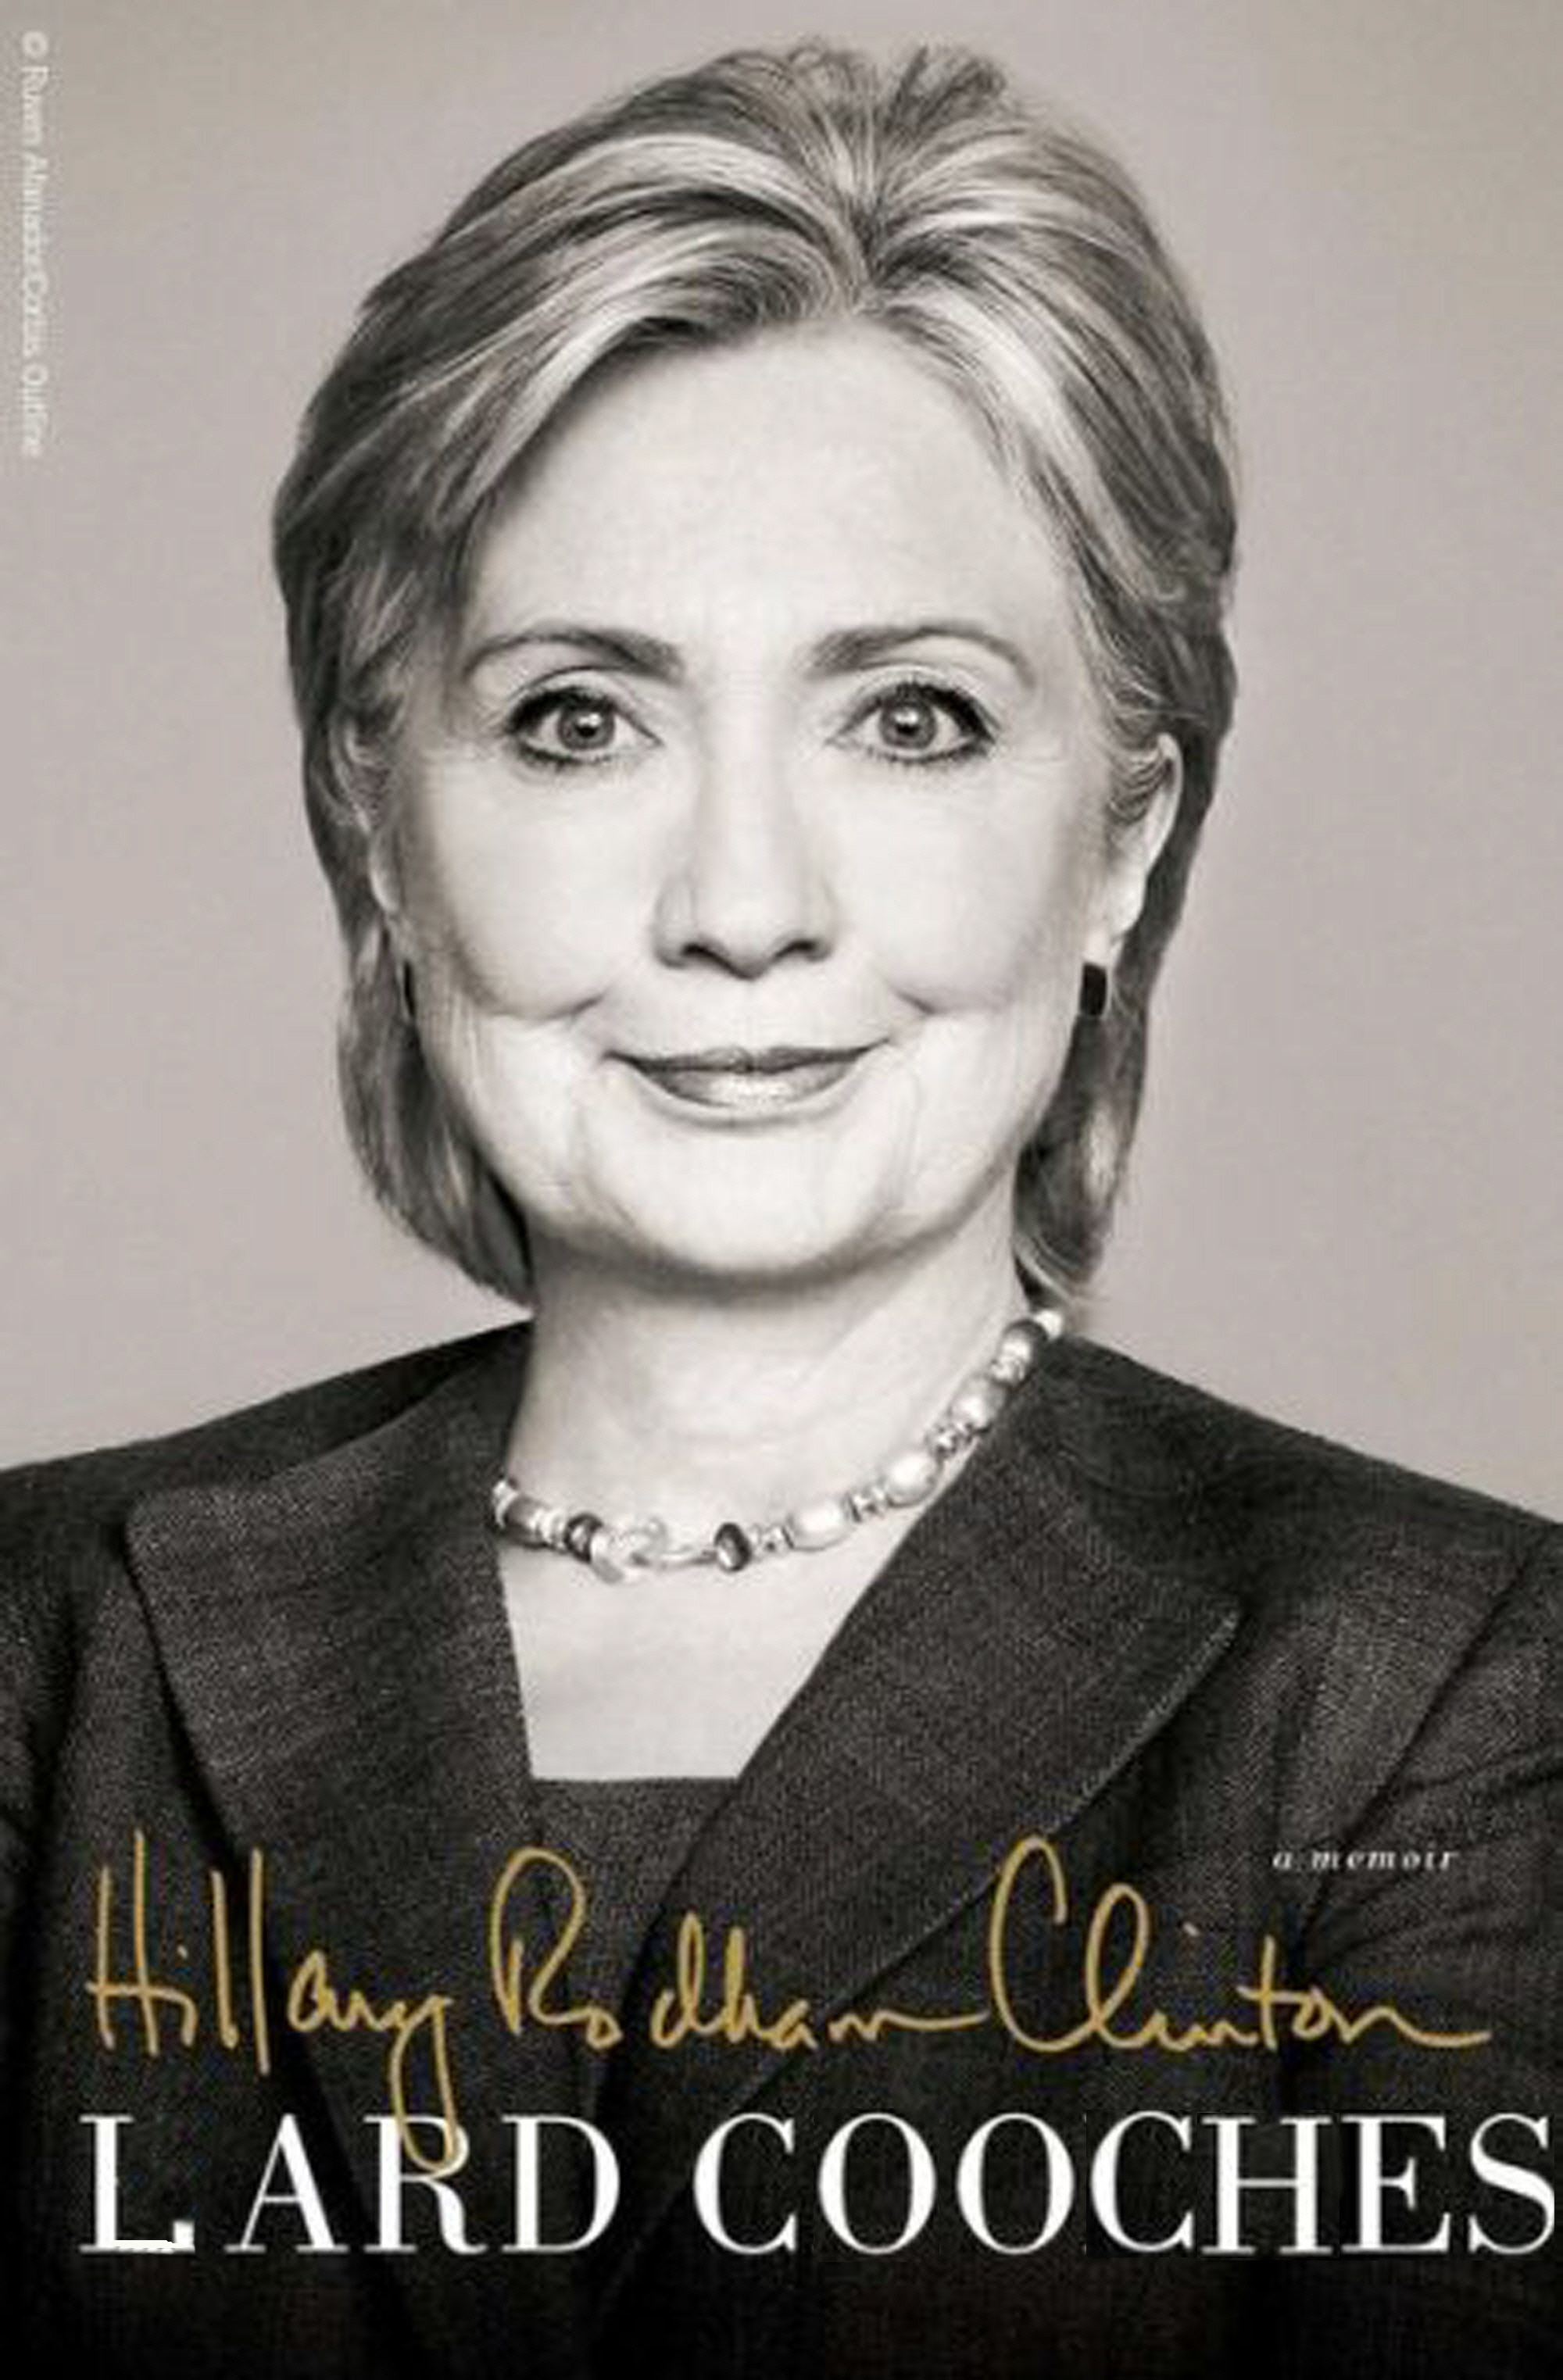 Hillary explains in this book how she acquired the taste for cooch. At first she thought it was just the way Bill tasted but after Huma Abedin, Cheryl Mills, and Susan Rice she knew. Join Hillary as she becomes the tail end of the democrat human centipede in LARD CHOOCHES.